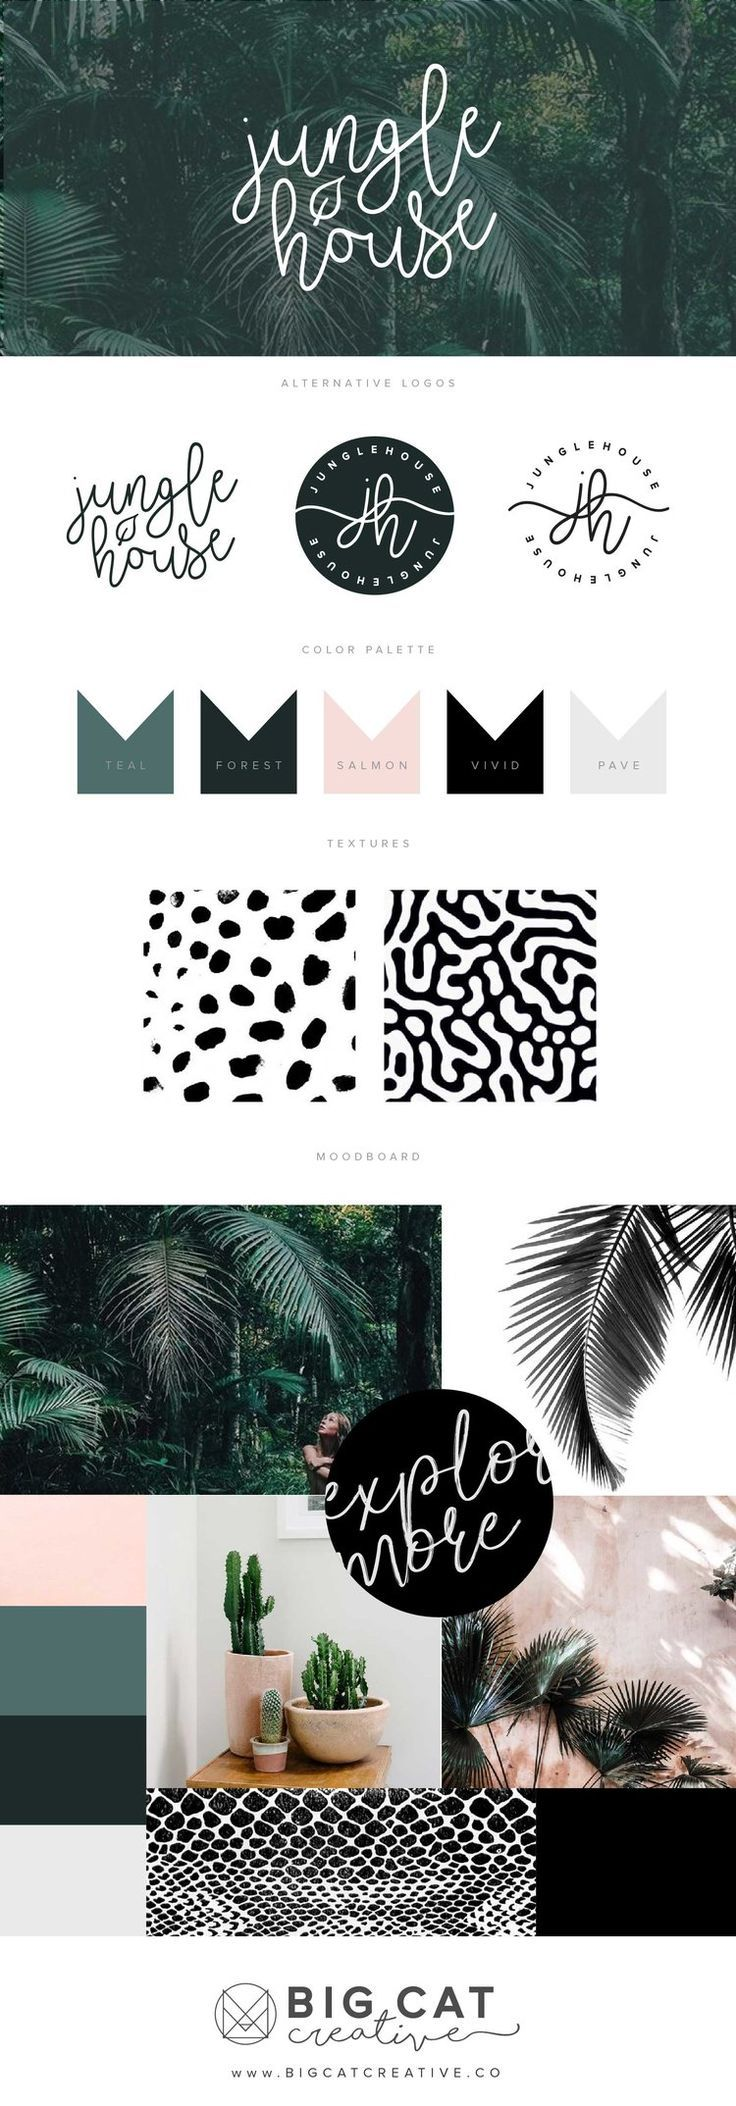 Branding Style Board for Jungle House | Get your own at www.bigcatcreative.co | Branding | Branding Style Board | Brand Board | Brand Design | Small Business | Creative Entrepreneur | Brand Design Inspiration | Logo Design Inspiration | Logo Design | Handwritten Logo | Color Palette | Moodboard | Script | Mood Board Inspiration | Brandboard | Green and Blush | Palm leaves